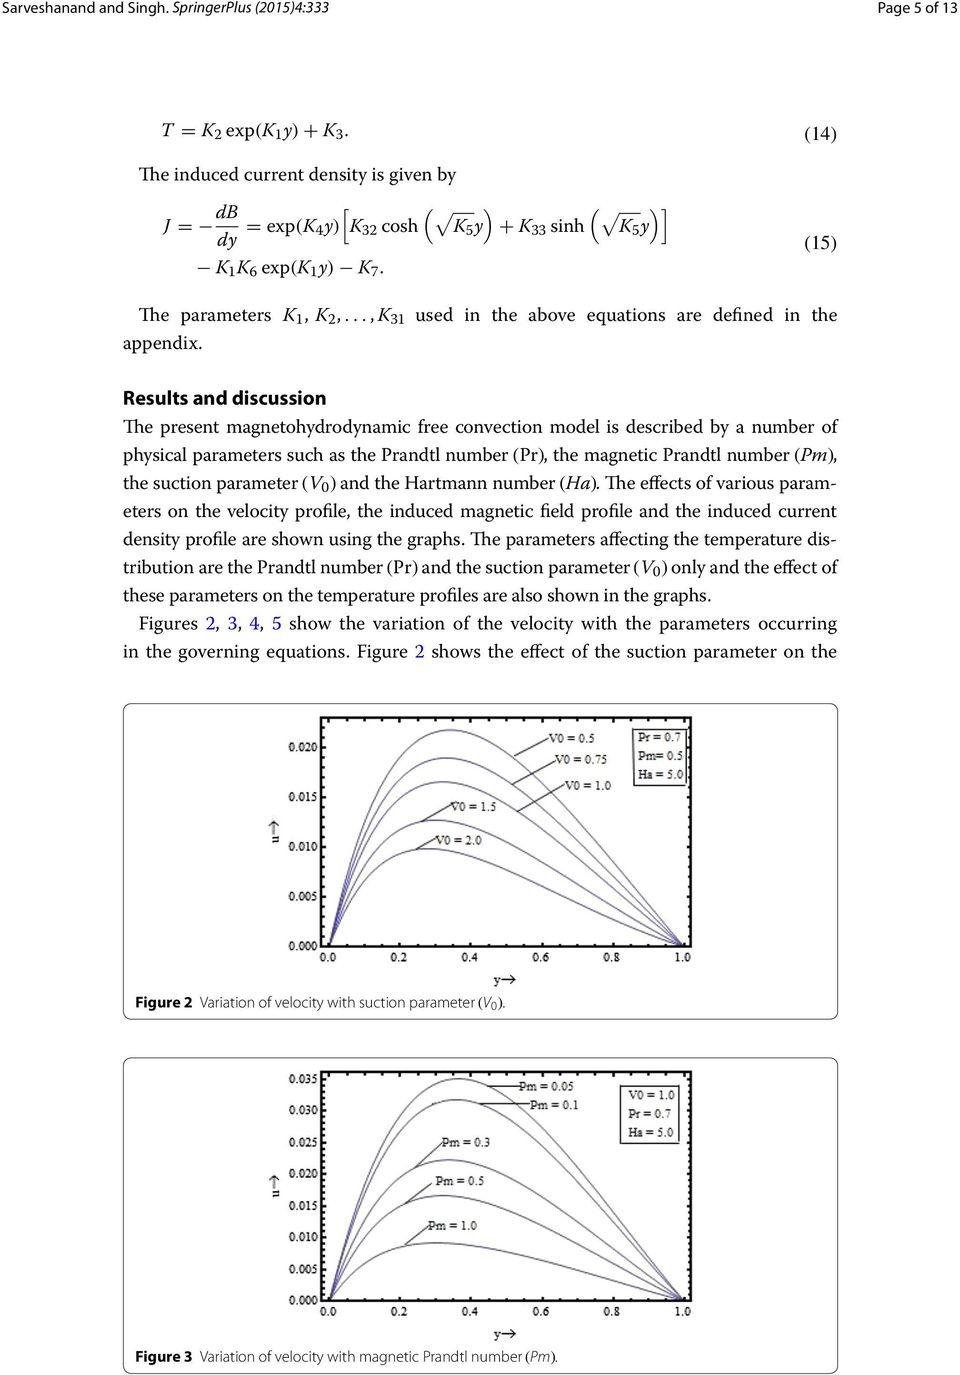 Results and discussion The present magnetohydrodynamic free convection model is described by a number of physical parameters such as the Prandtl number (Pr), the magnetic Prandtl number (Pm), the